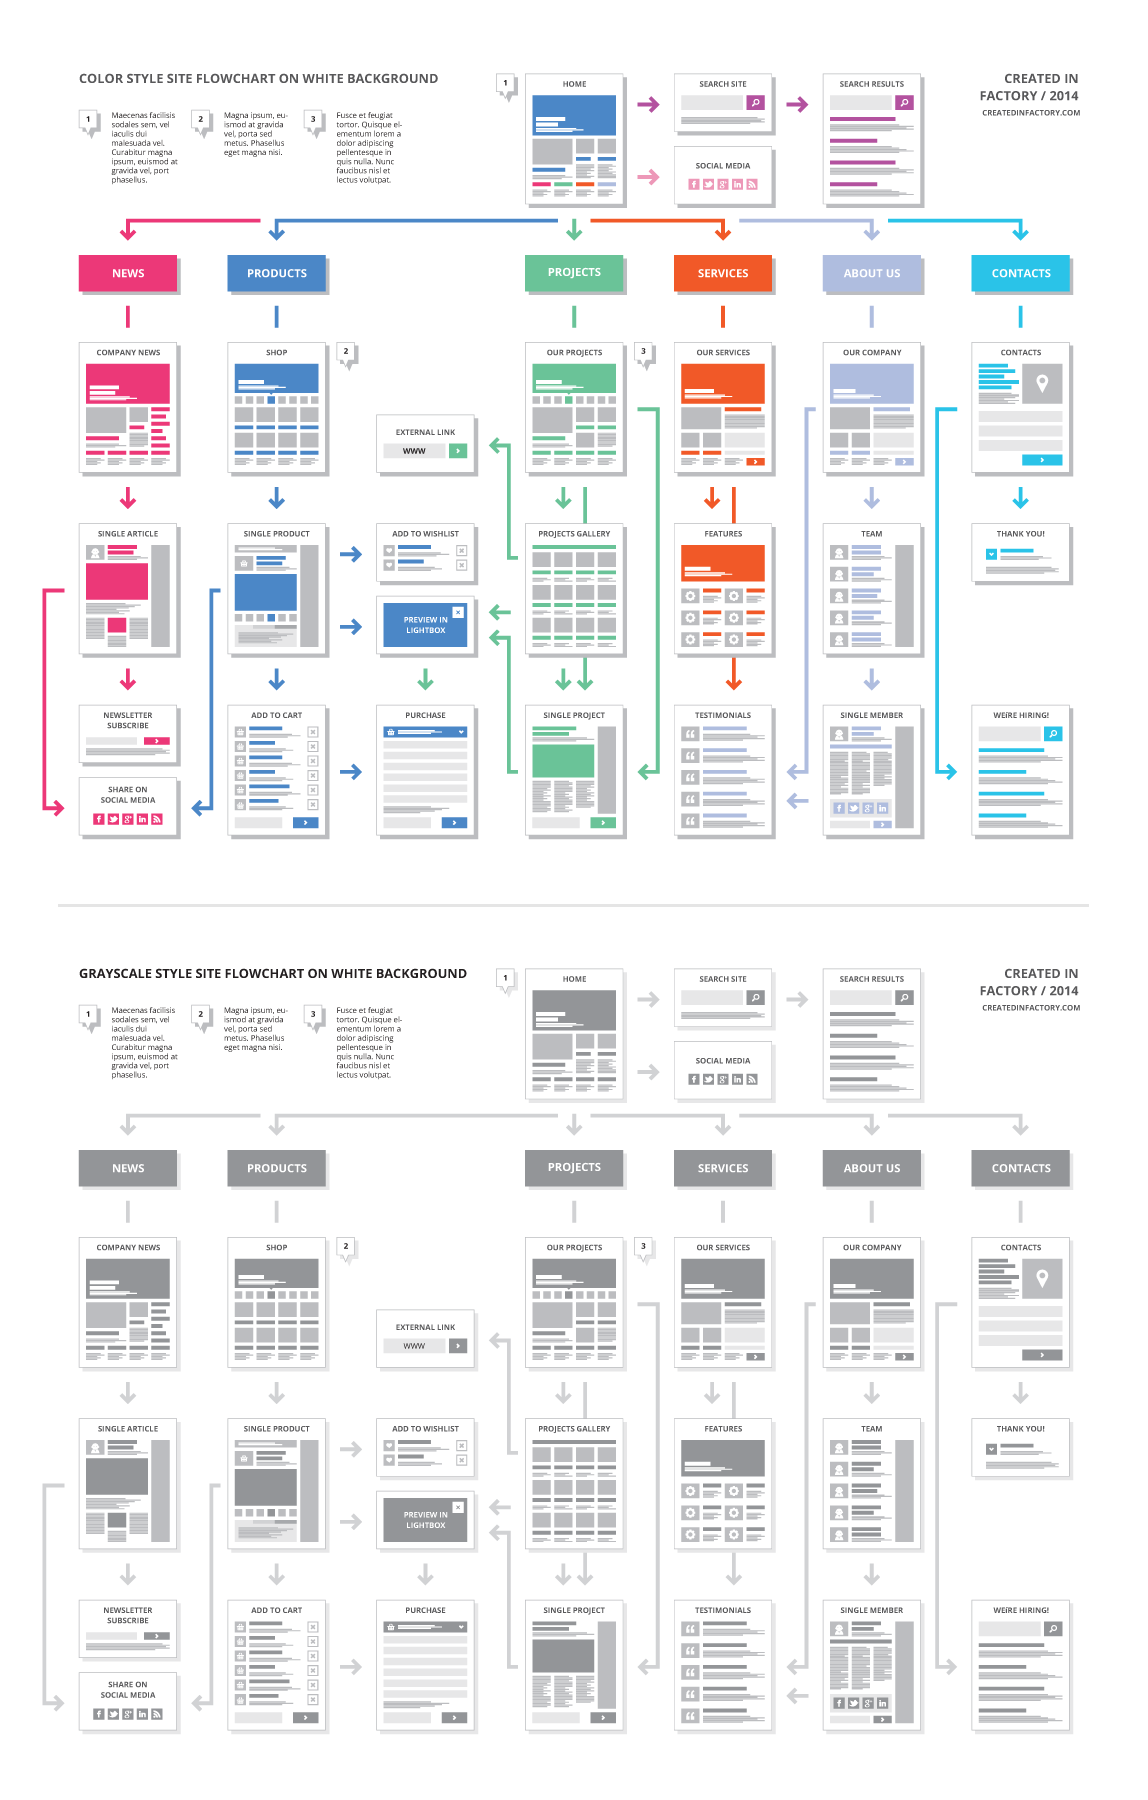 Easyone ☆ Website Flowchart Template By Created In Factory On Creative  Market